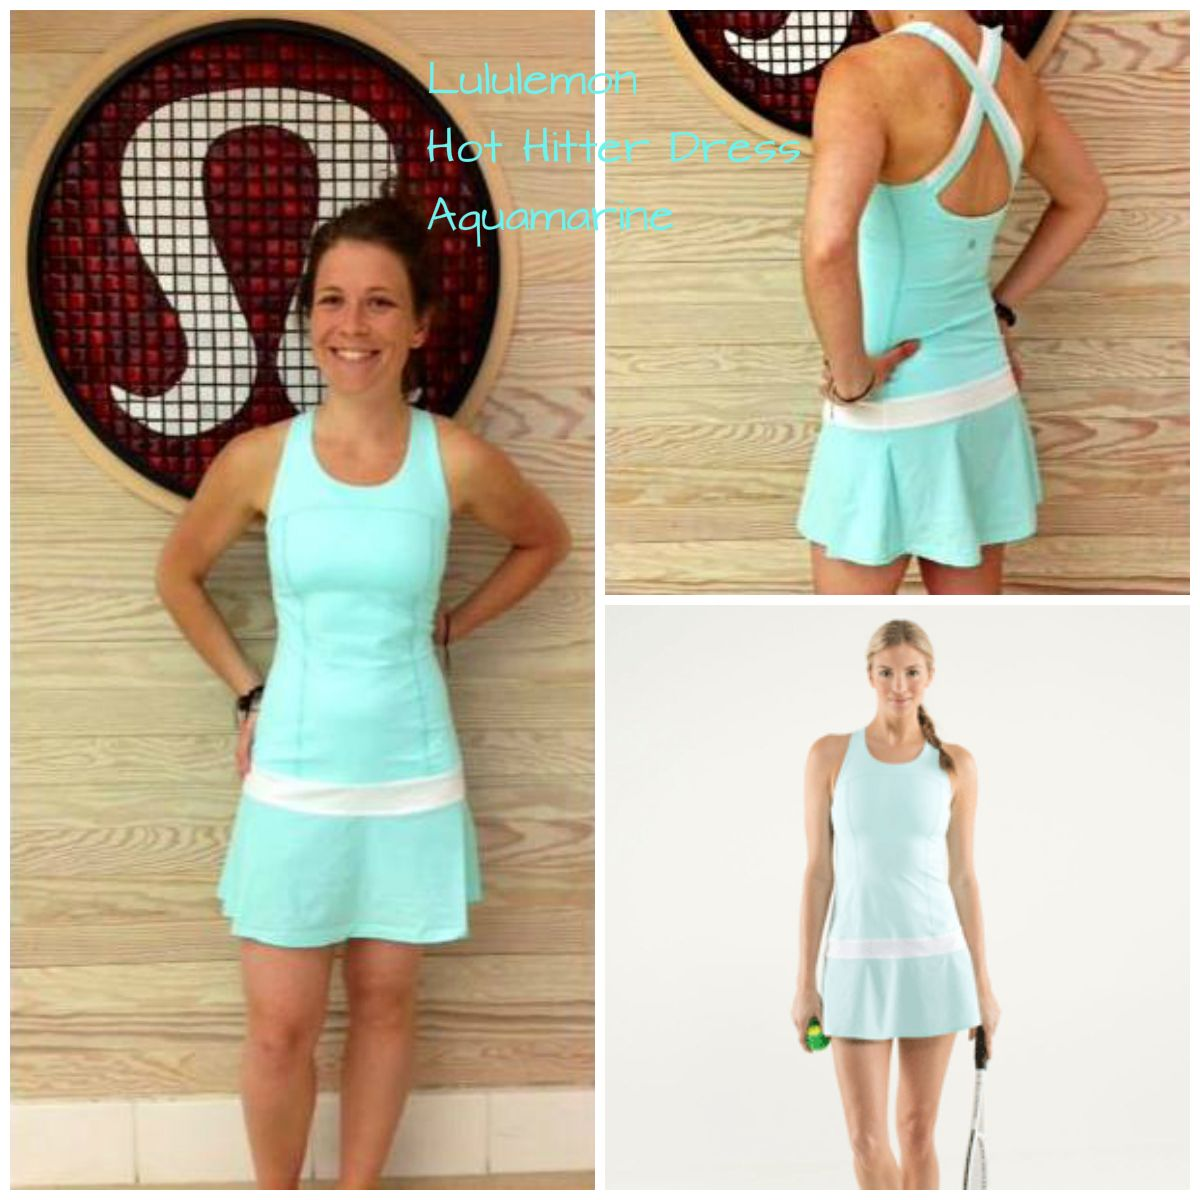 ac6cae2d86 Hot Hitter Dress in Aquamarine. Have an 8, need a 6, will trade if ...